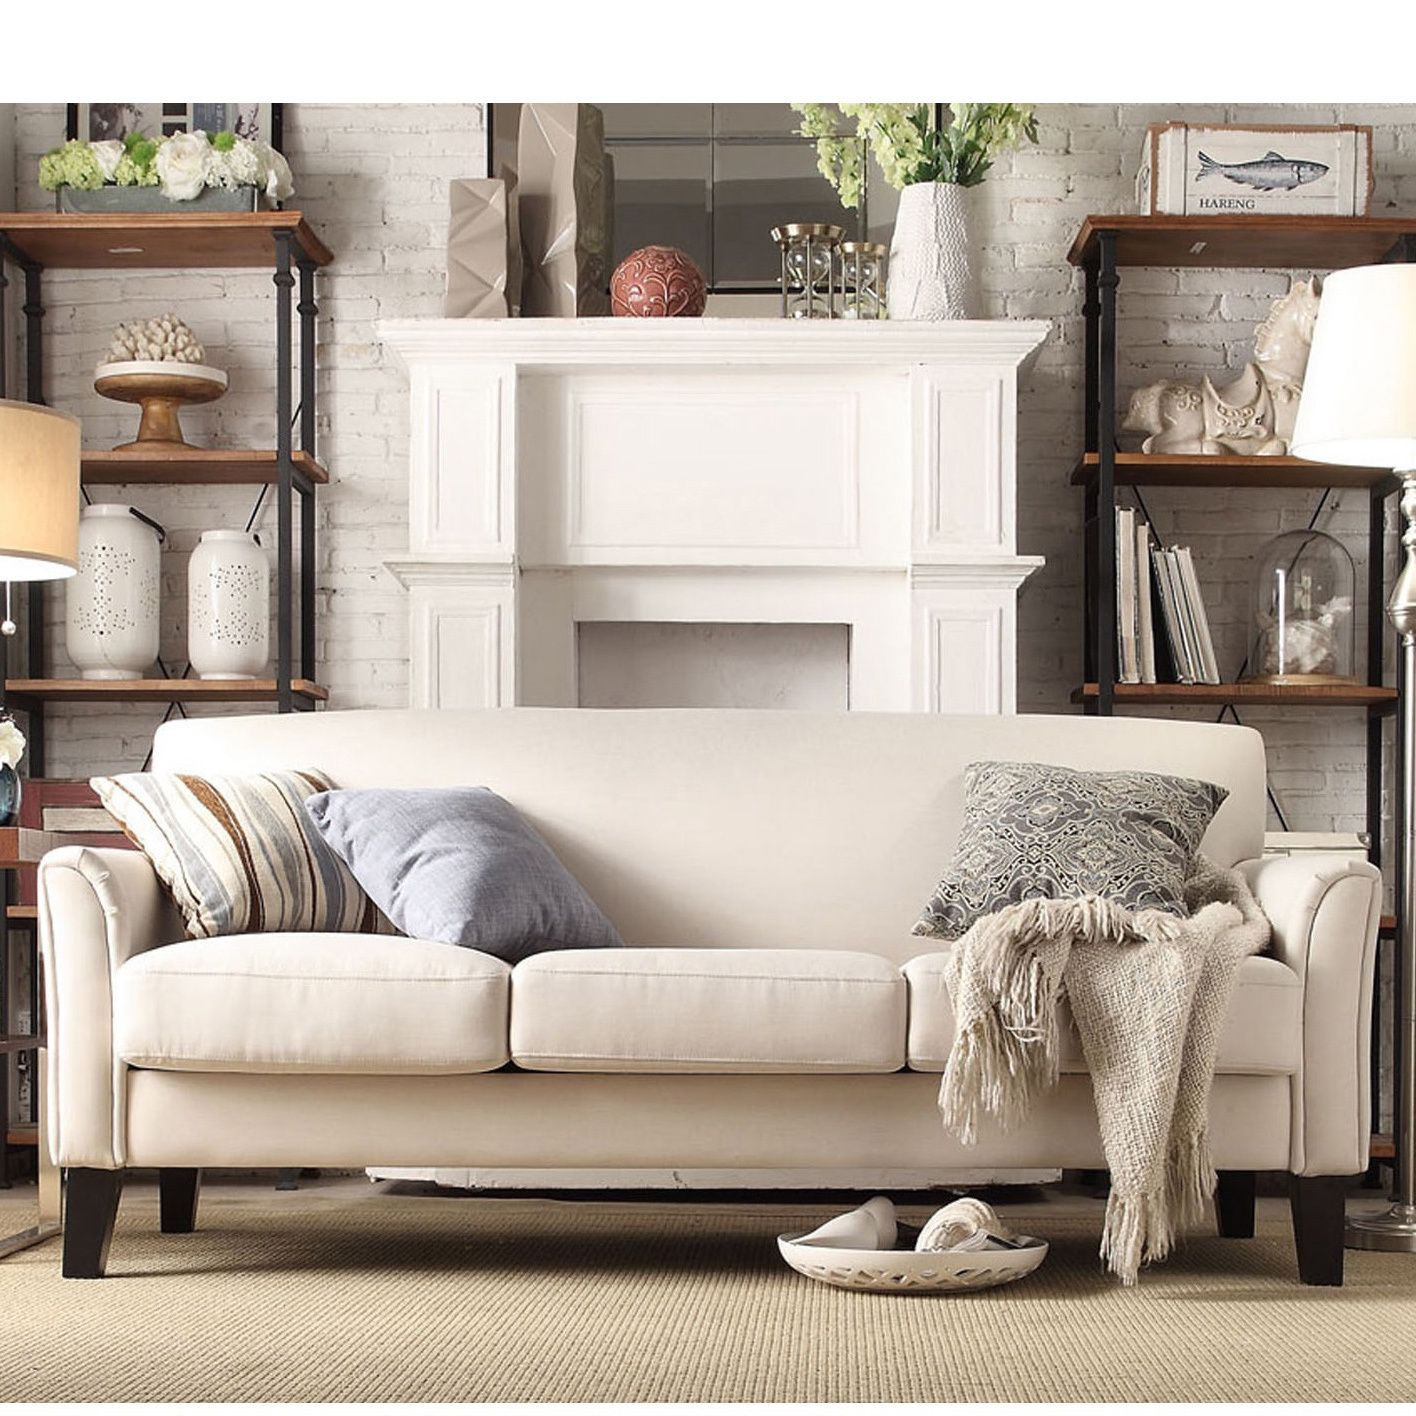 Add stylish seating to your room with this comfortable Uptown sofa. This  modern piece features